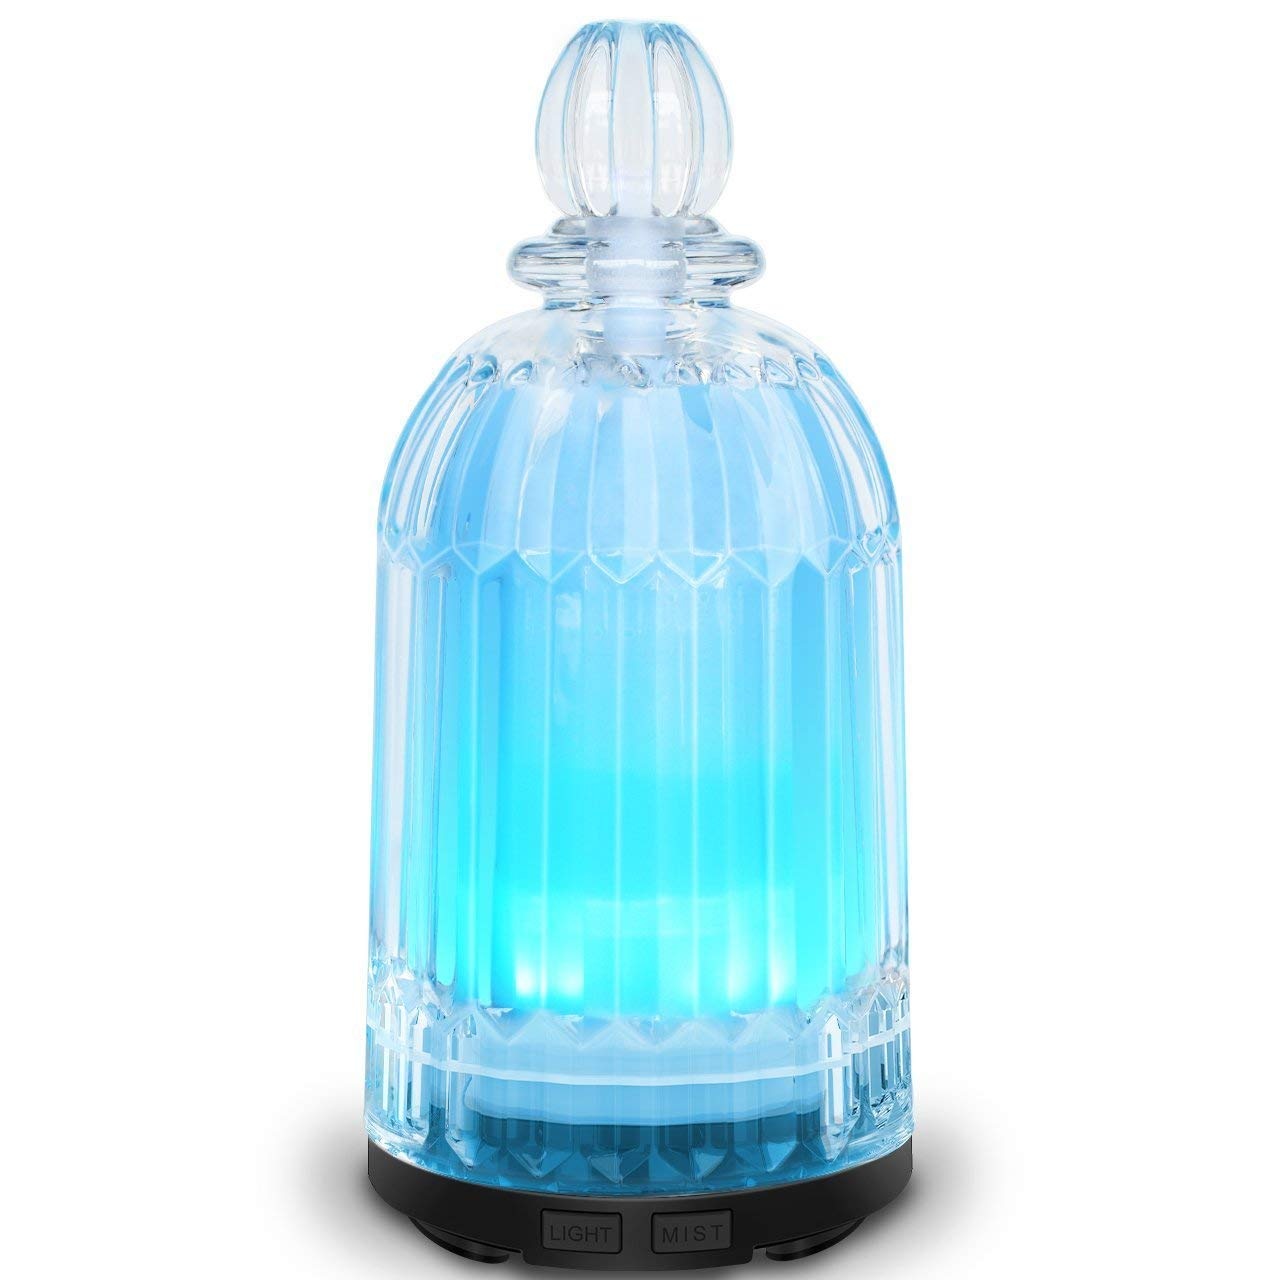 COSVII Glass Oil Diffuser Ultrasonic Aromatherapy diffuser for Essential Oils with 7-color LED Lights, Automatic Shut-off Function